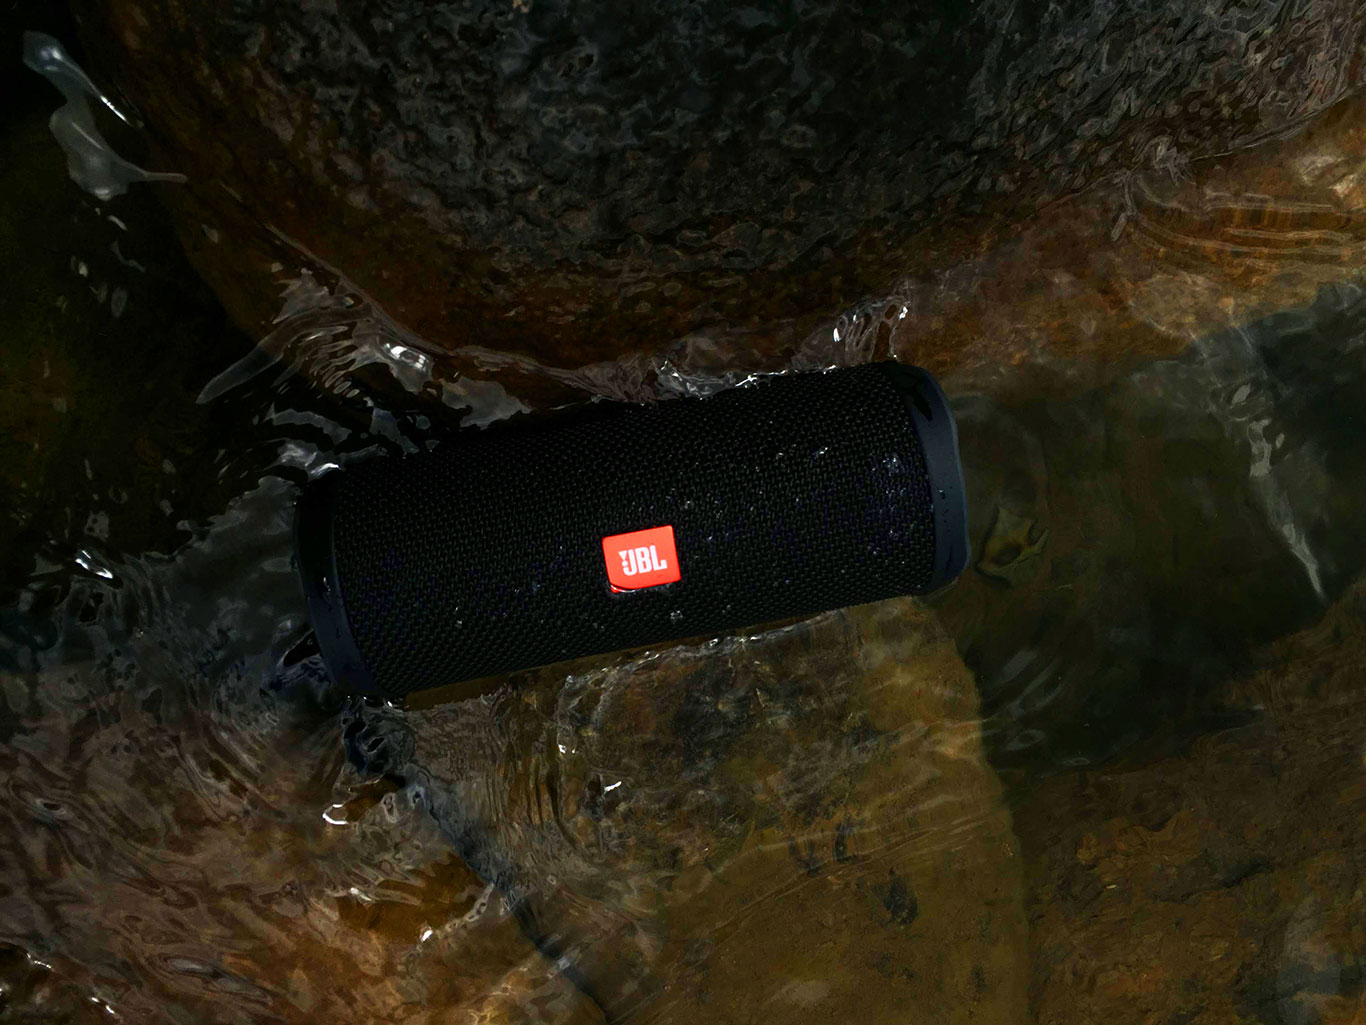 Fishing and Music? A Review of the Waterproof JBL Flip 4 Speaker and Fishing